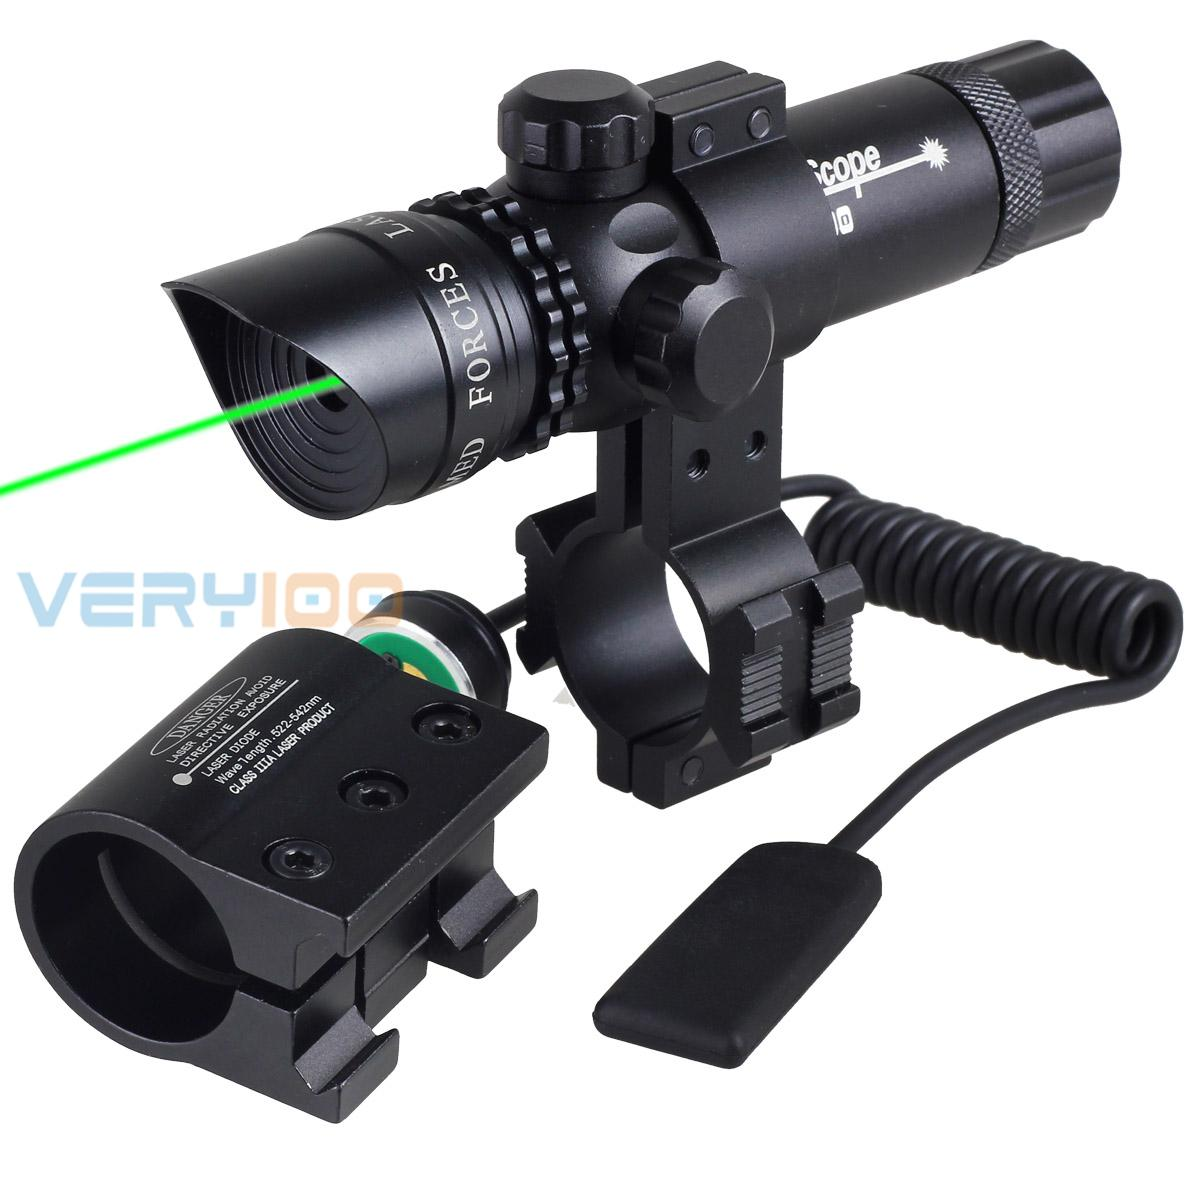 Tactical 532nm Green Dot Adjustable Laser Sight Scope w/2 Mounts Switch for Hunting Riflescope Airsoft Guns 3 5 10x40e red green dot laser sight scope hunting optics riflescopes tactical airsoft air guns scope chasse sniper rifle scope